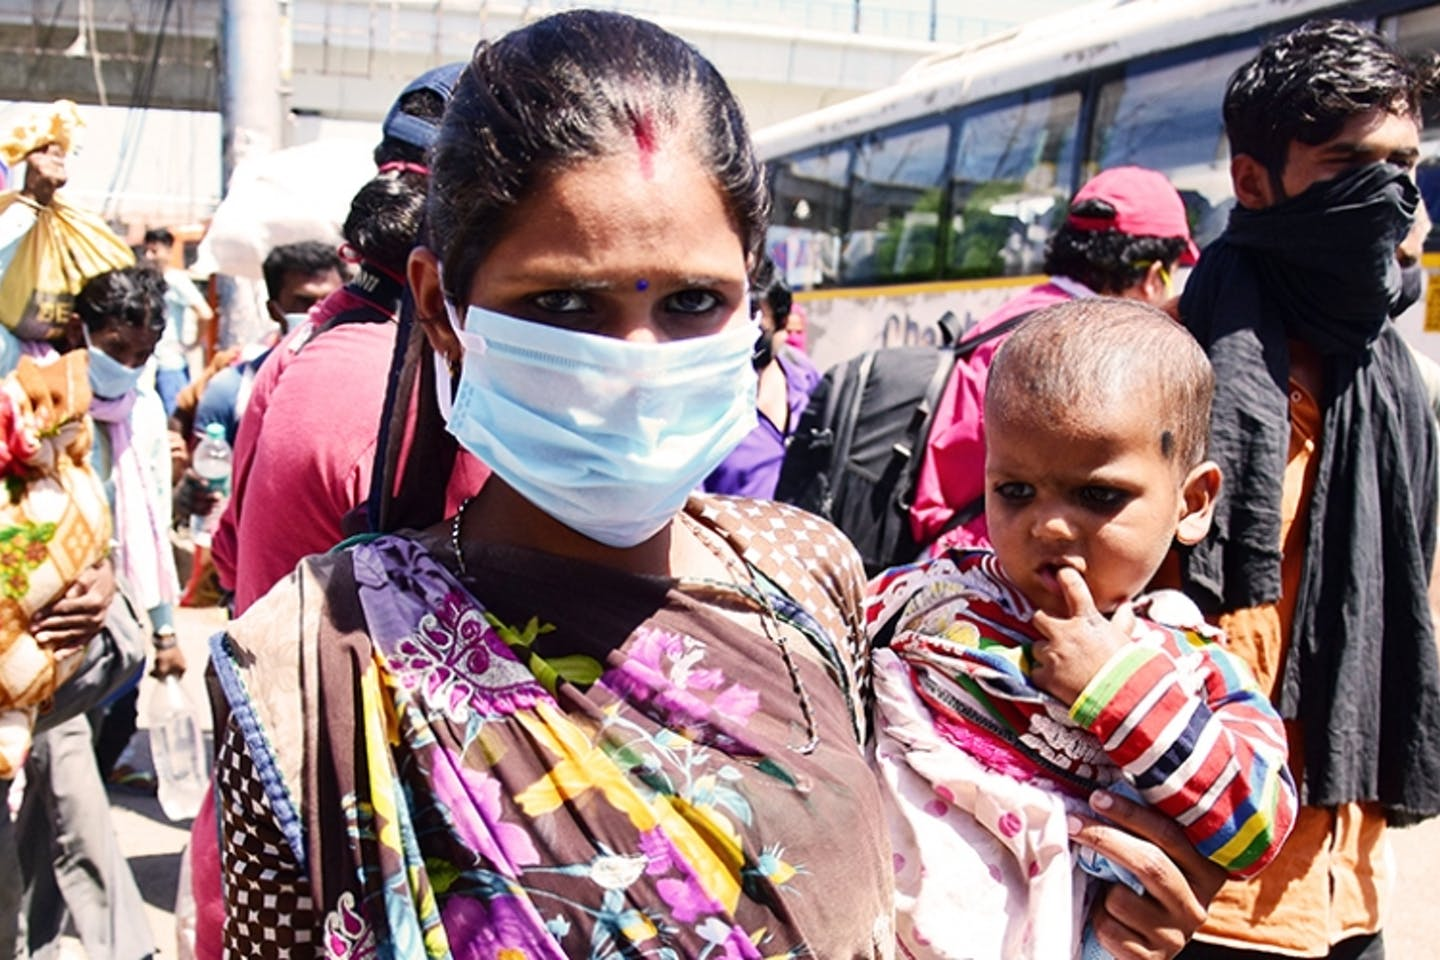 A woman with her baby at a bus stop in Delhi. Women in developing countries are being hit hardest by the coronavirus pandemic. Image: rajput/​SOPA Images/​Shutterstock